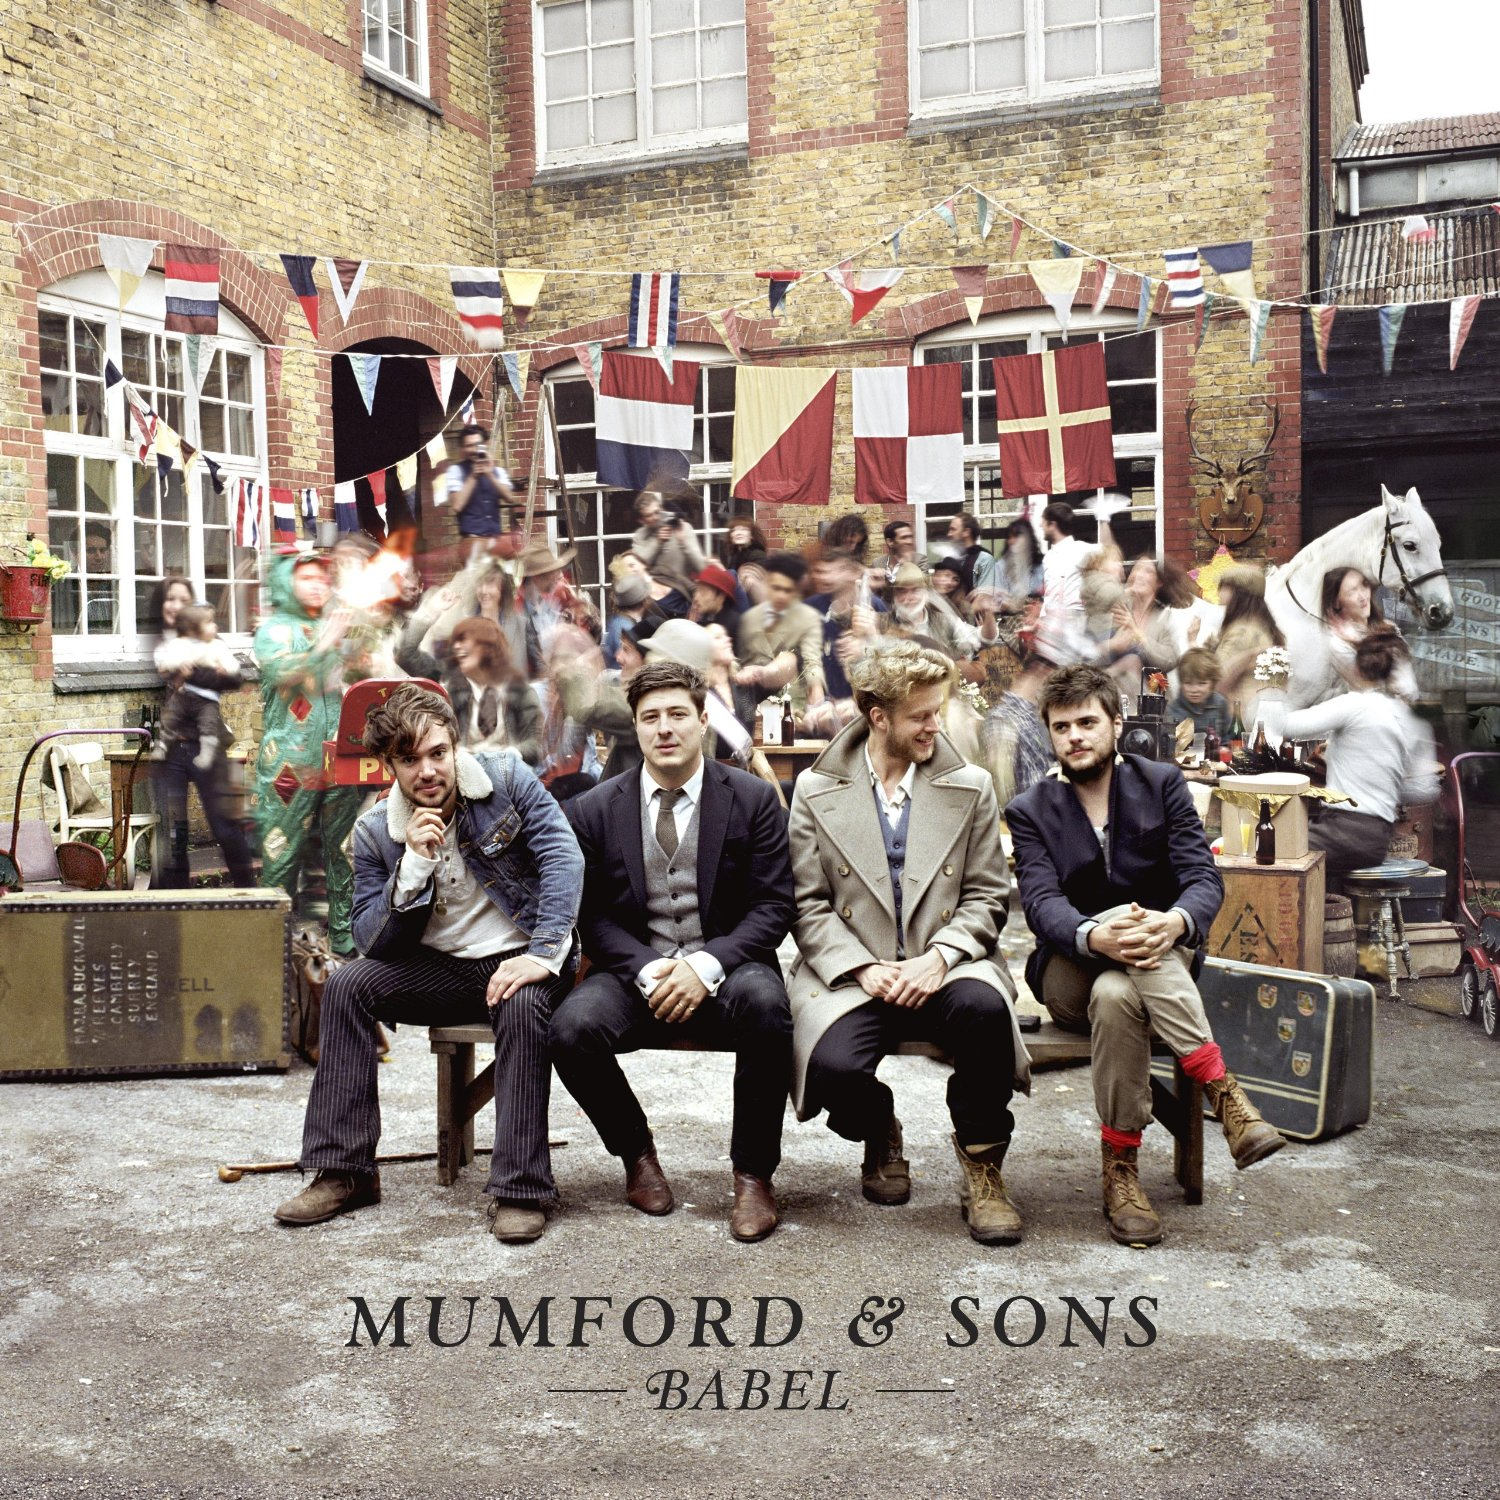 #TuesdayTune @natashainozblog I Will Wait by Mumford & Sons.